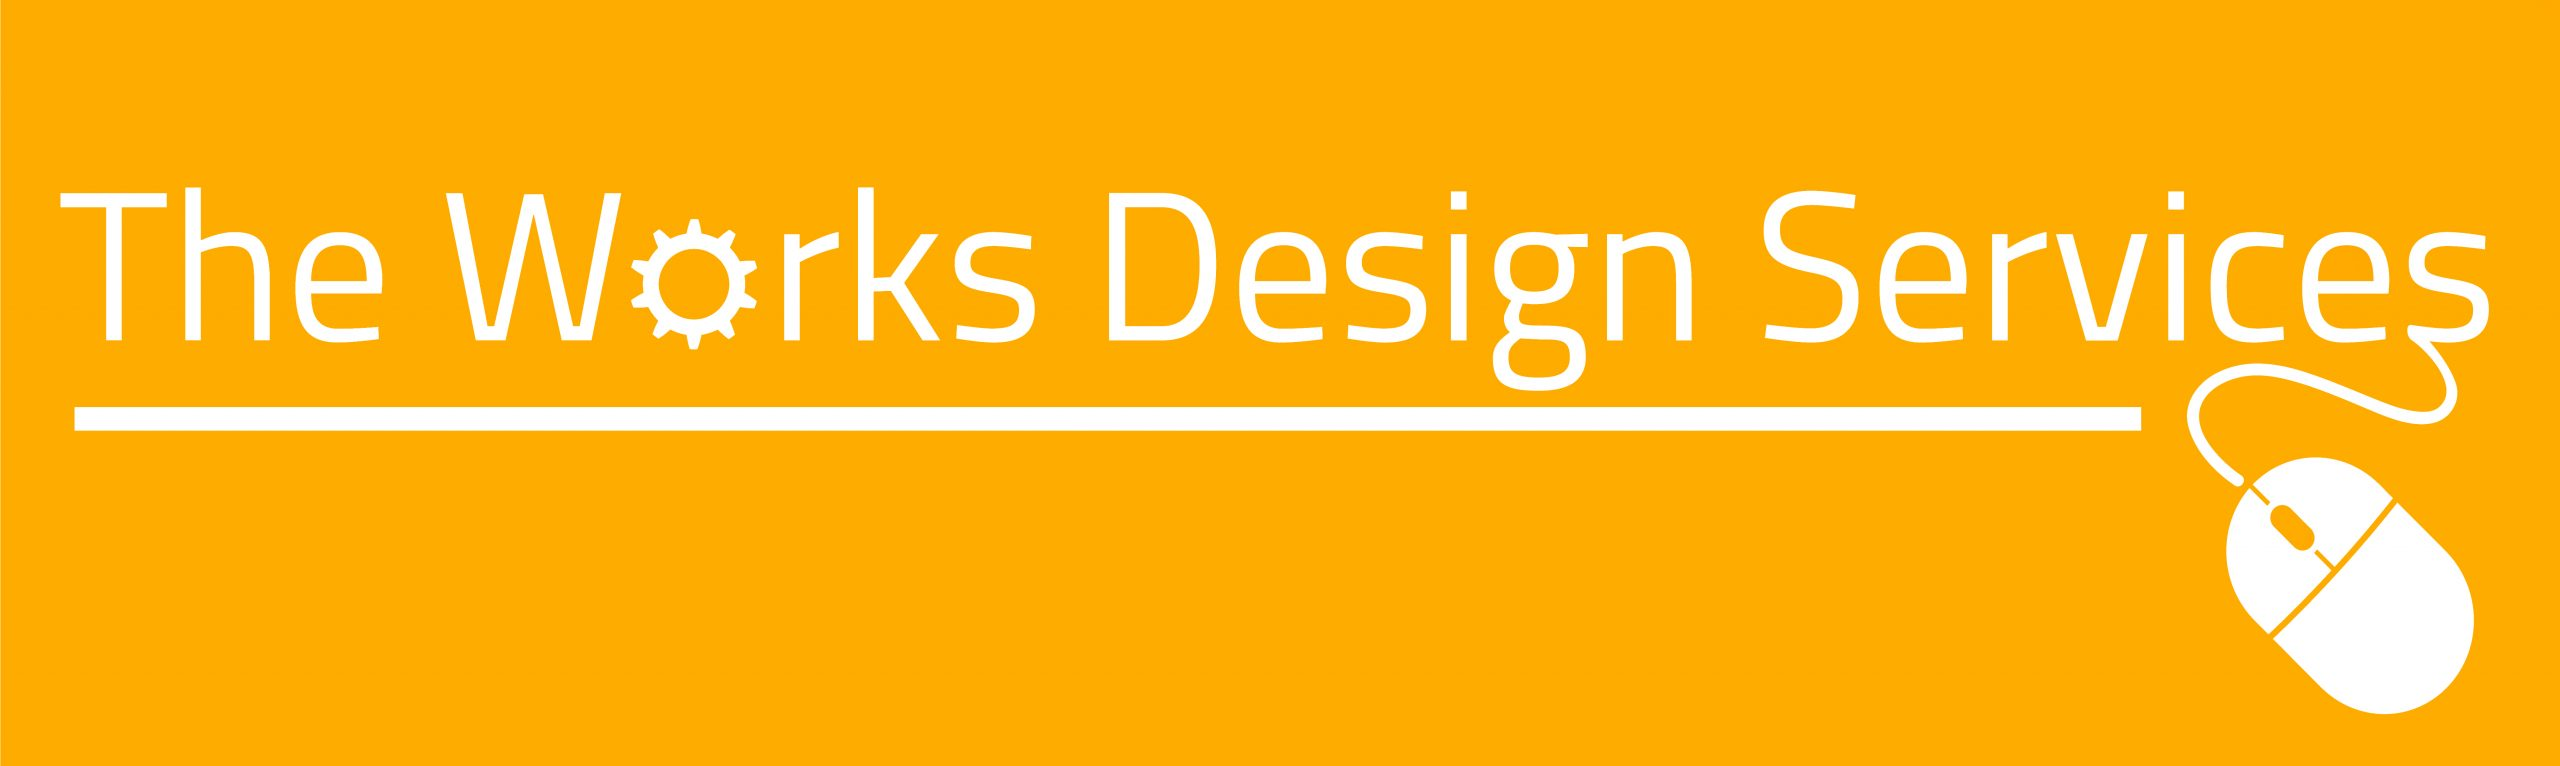 The Works Design Services